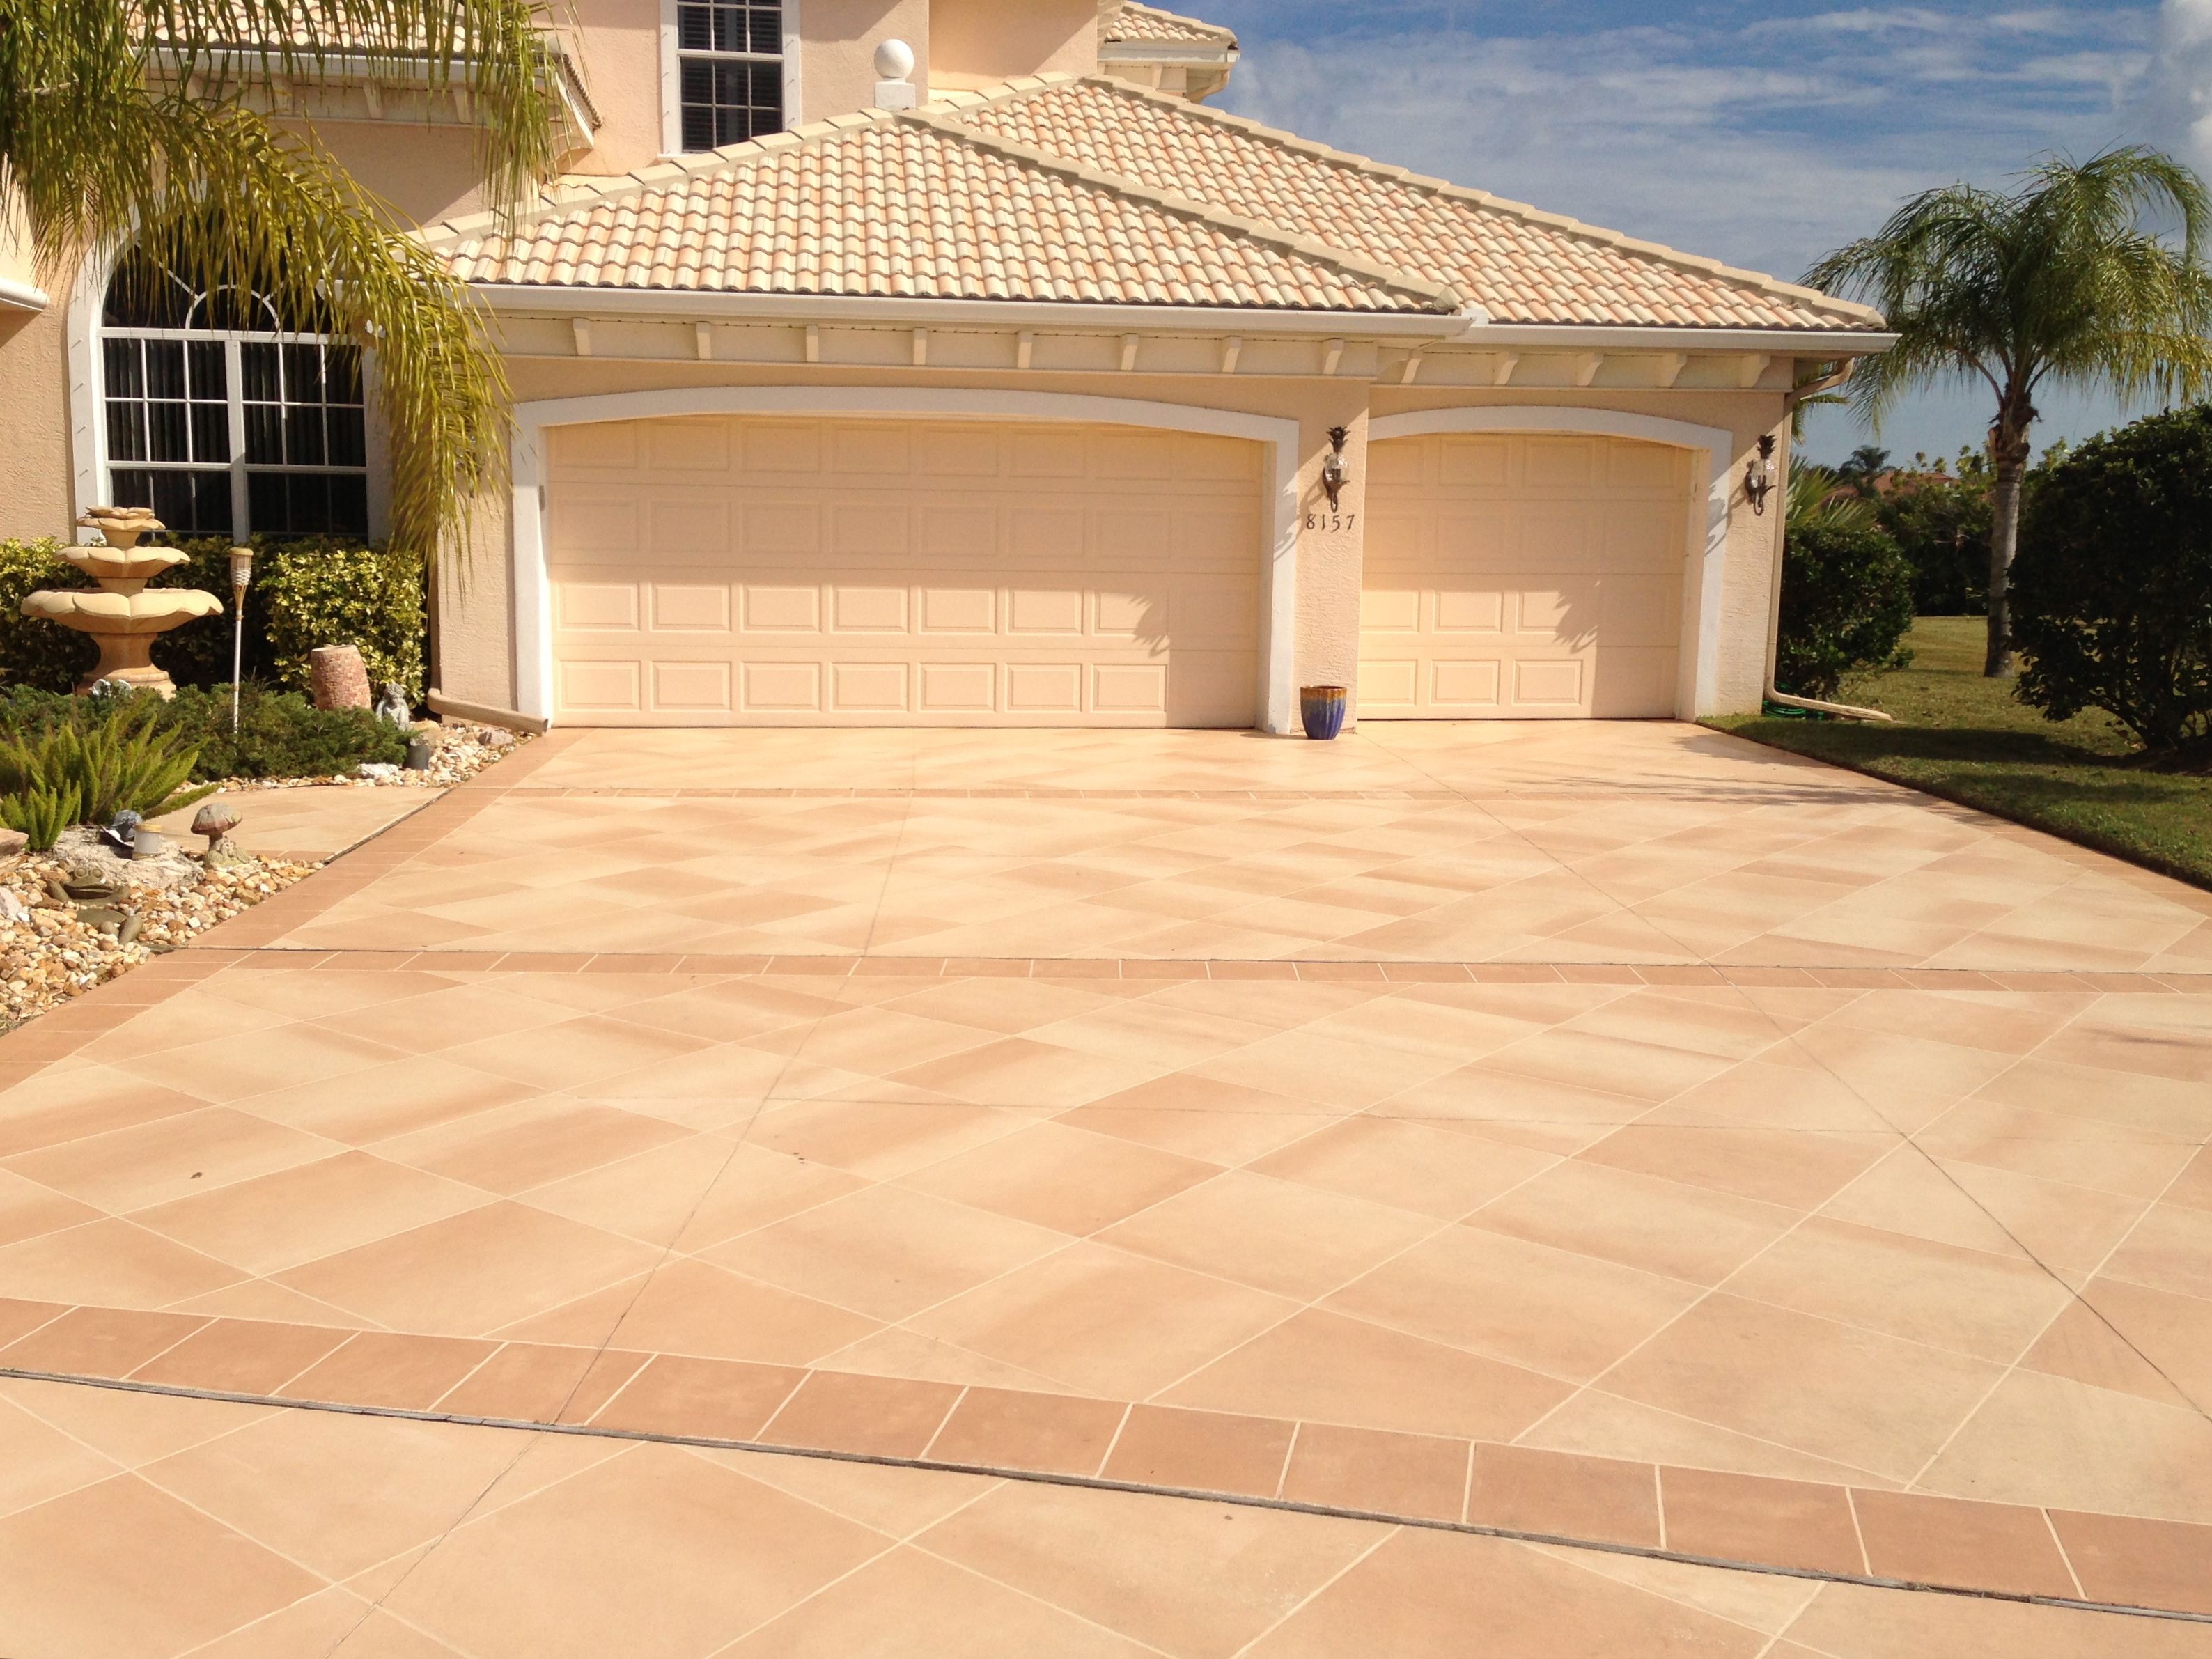 Concrete designs florida driveway decorating ideas Home driveway design ideas